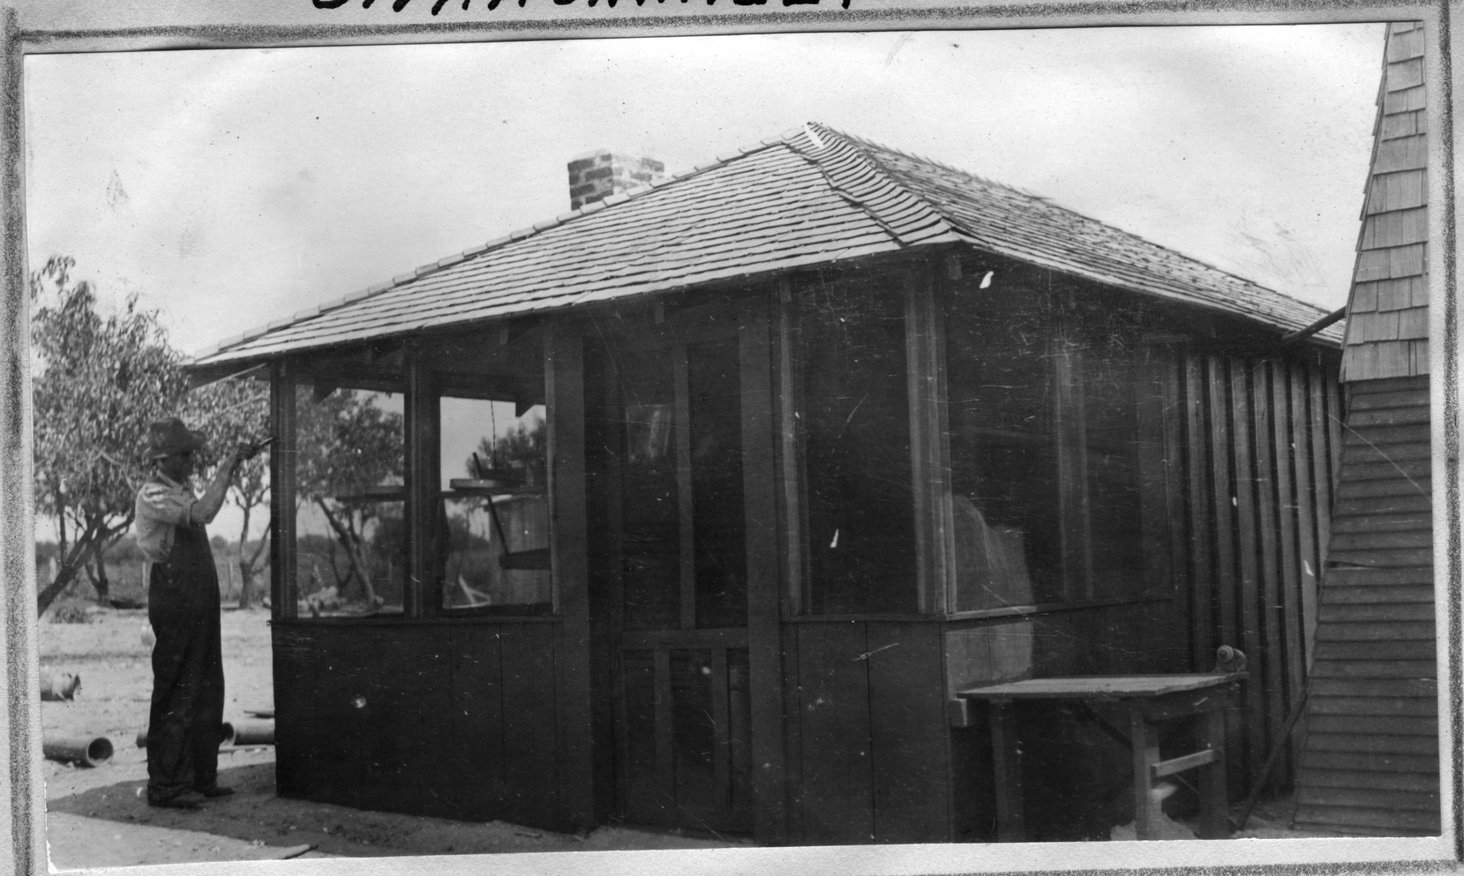 111~J. M. Nunnally Milkhouse Aug 1920.jpg